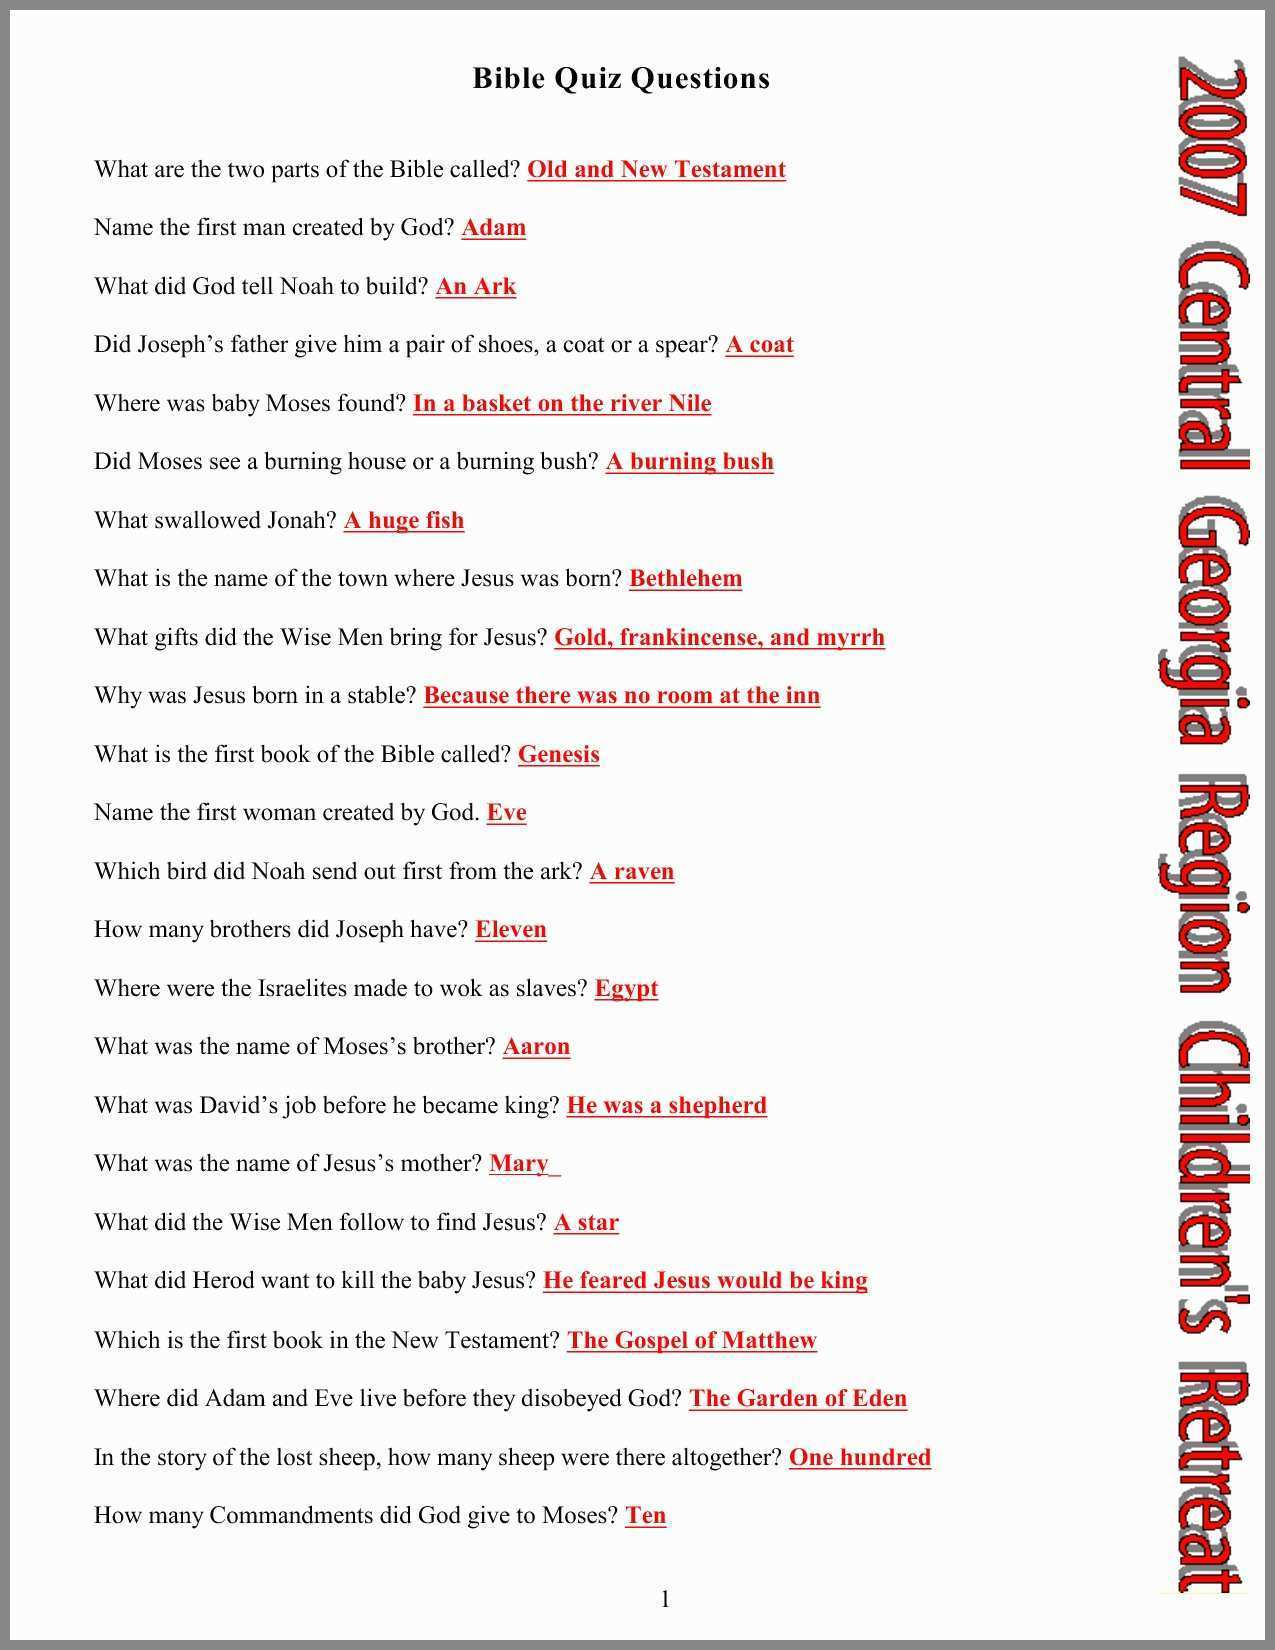 Bible Trivia And Answers Best Of Printable Bible Coloring Pages - Free Printable Bible Trivia Questions And Answers